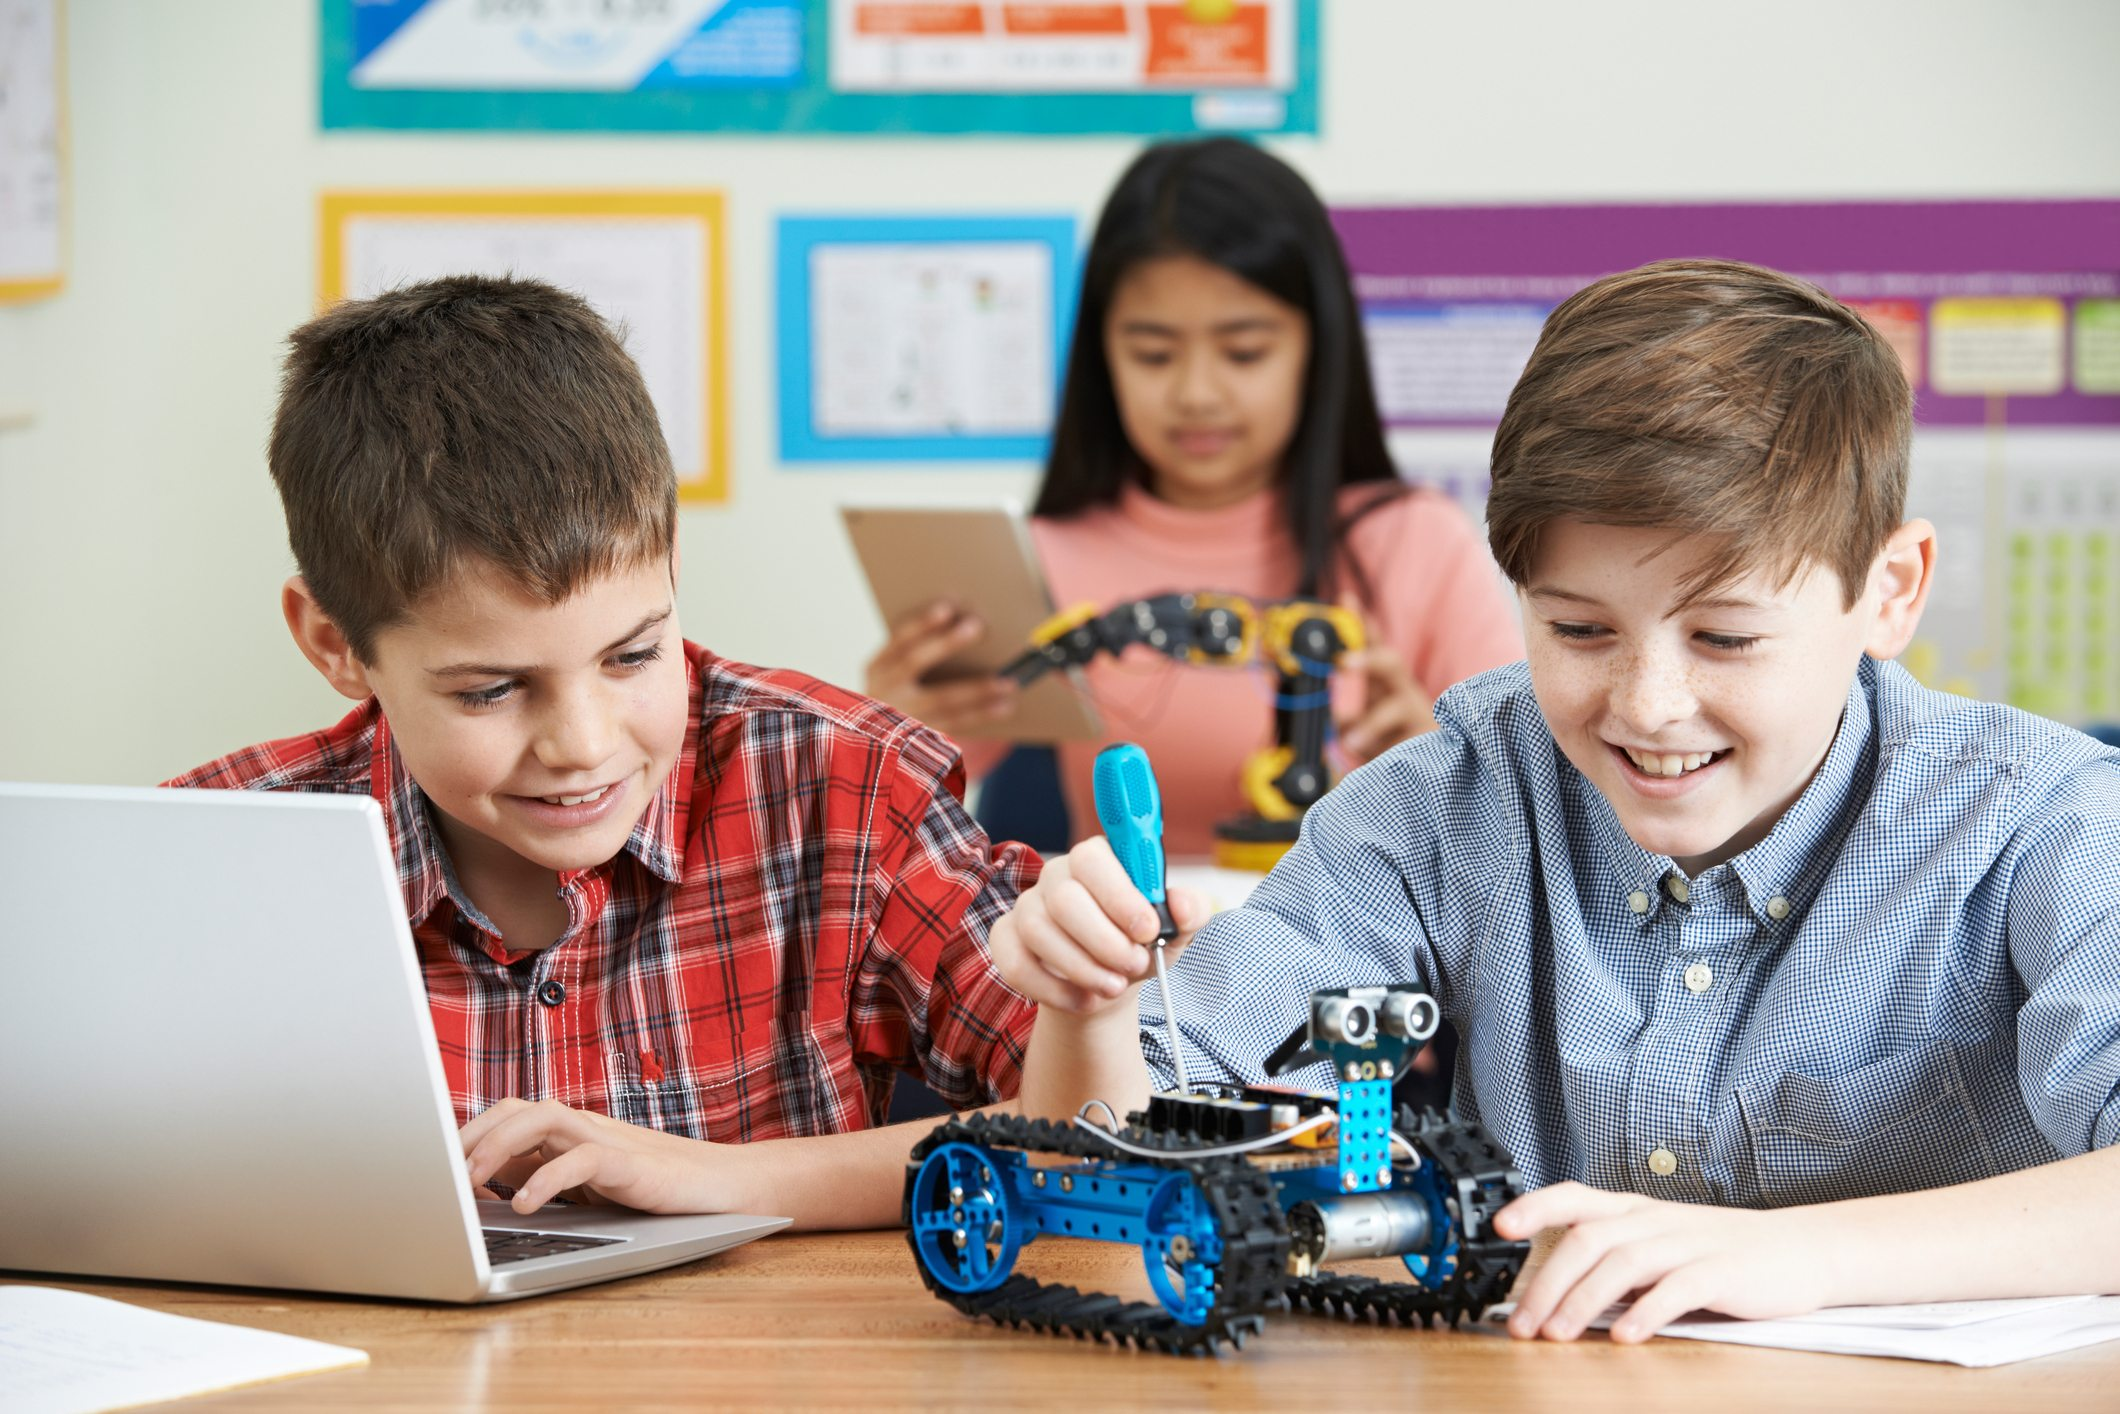 What is the best programming language for kids